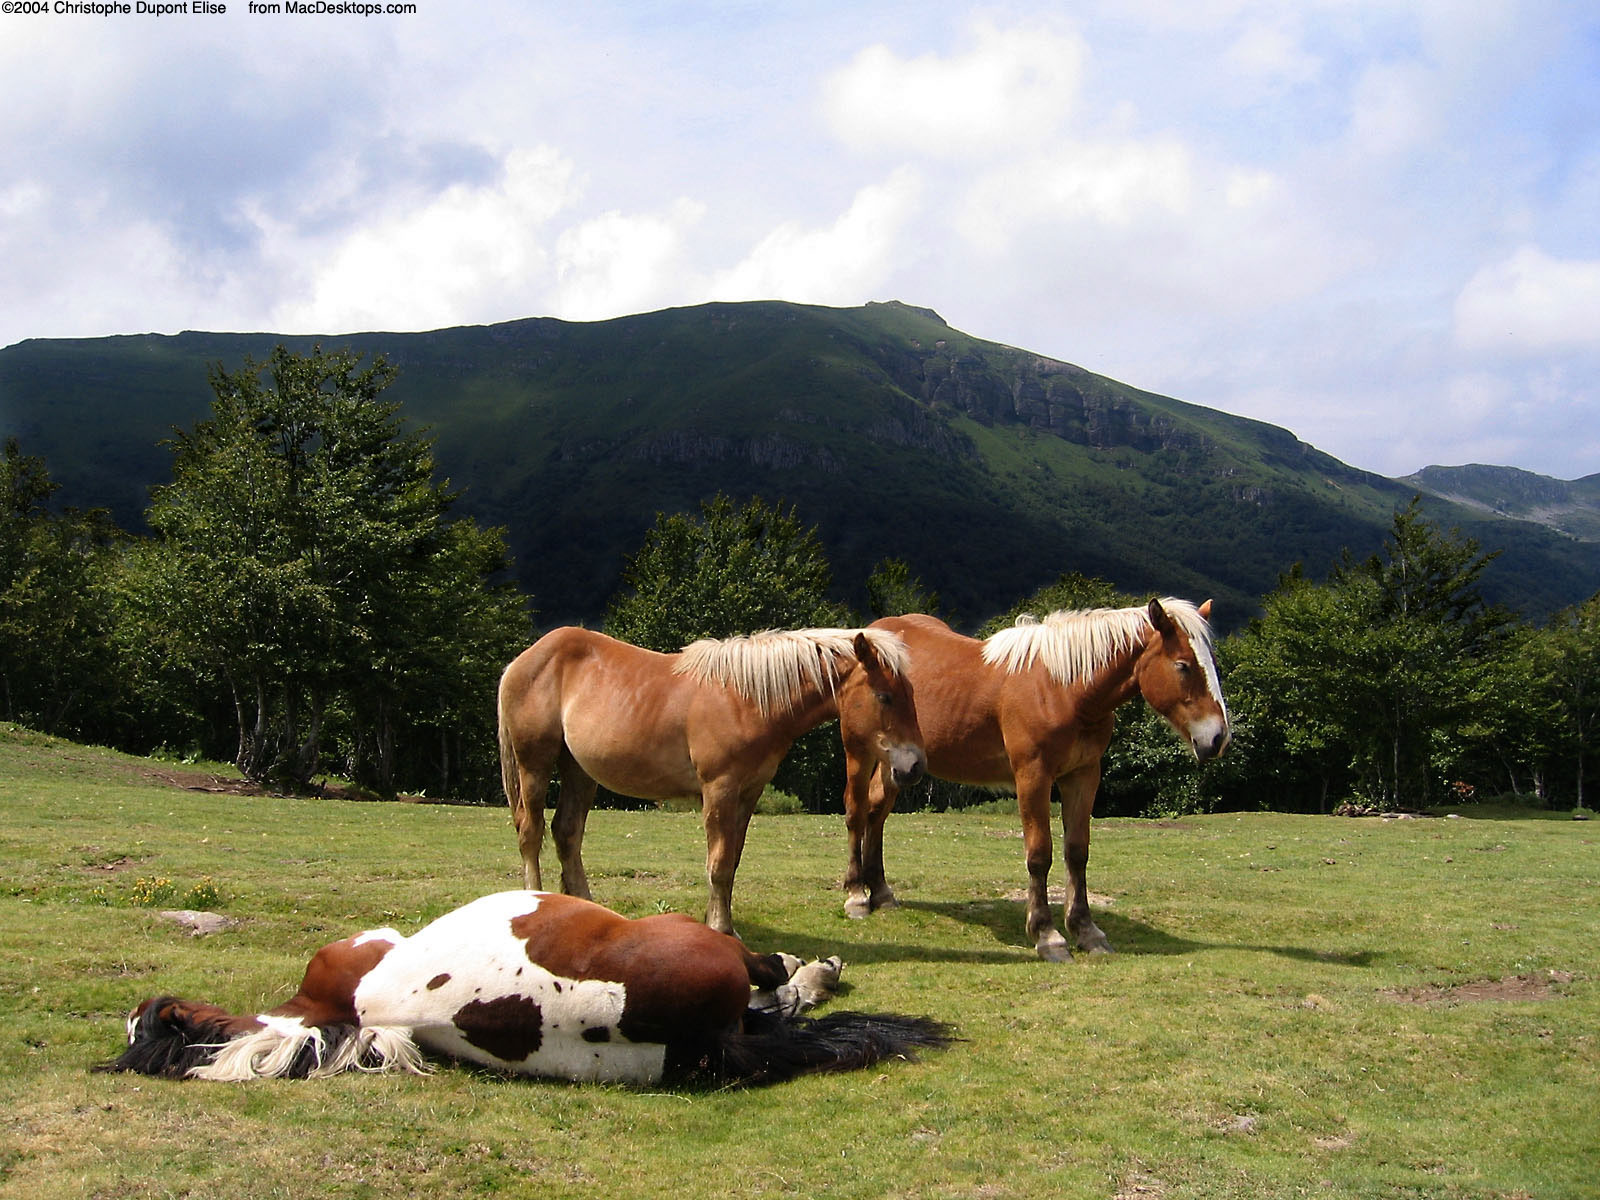 Horse Wallpapers Wild Horses Photos - HD Animal Wallpapers